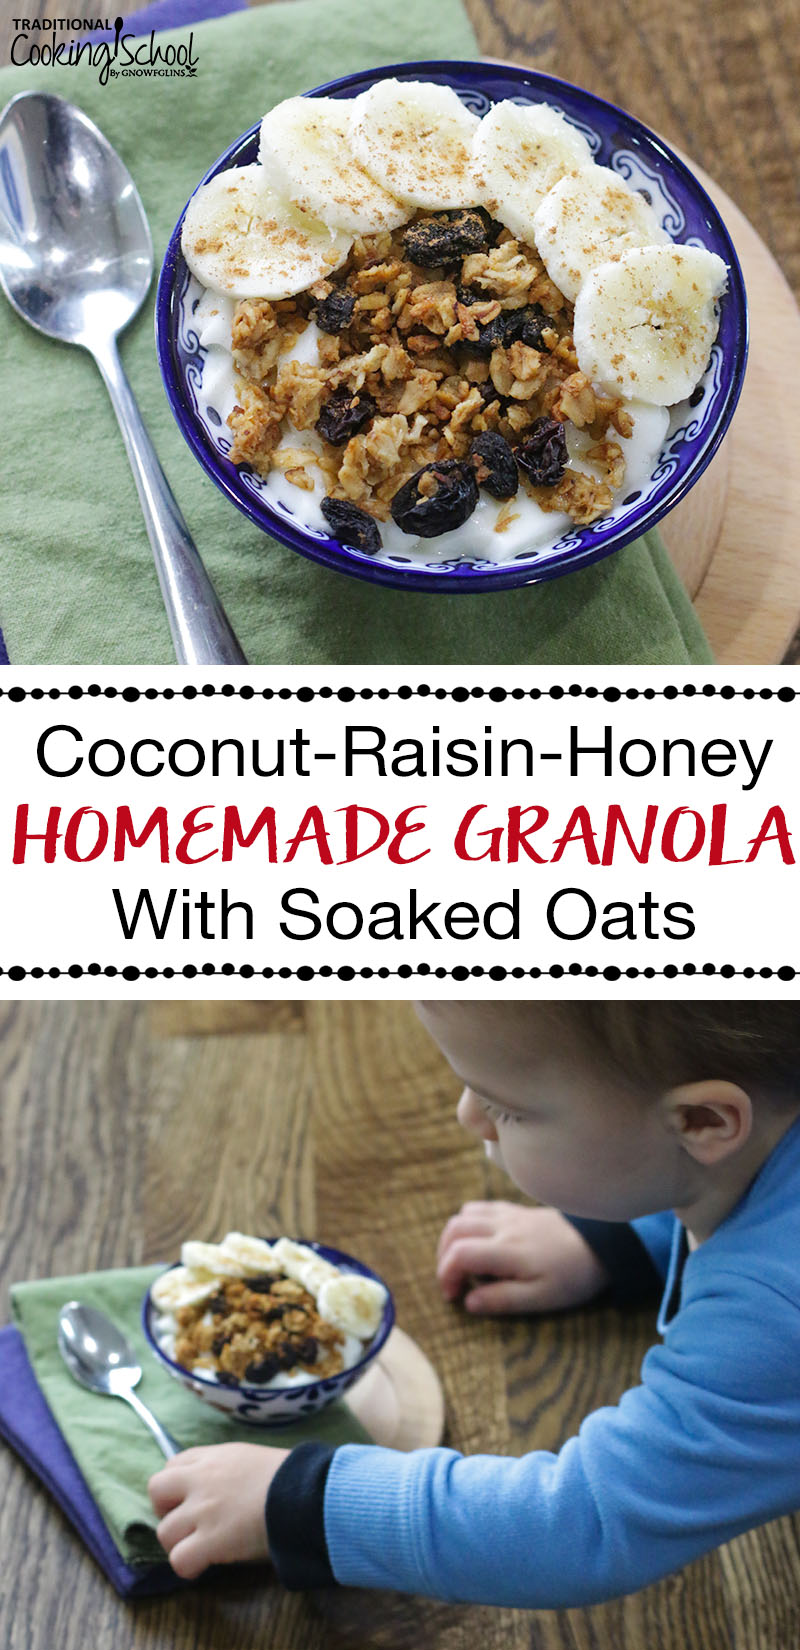 "photo collage of homemade granola and yogurt, garnished with banana slices and cinnamon, with text overlay: ""Coconut-Raisin-Honey Homemade Granola With Soaked Oats"""